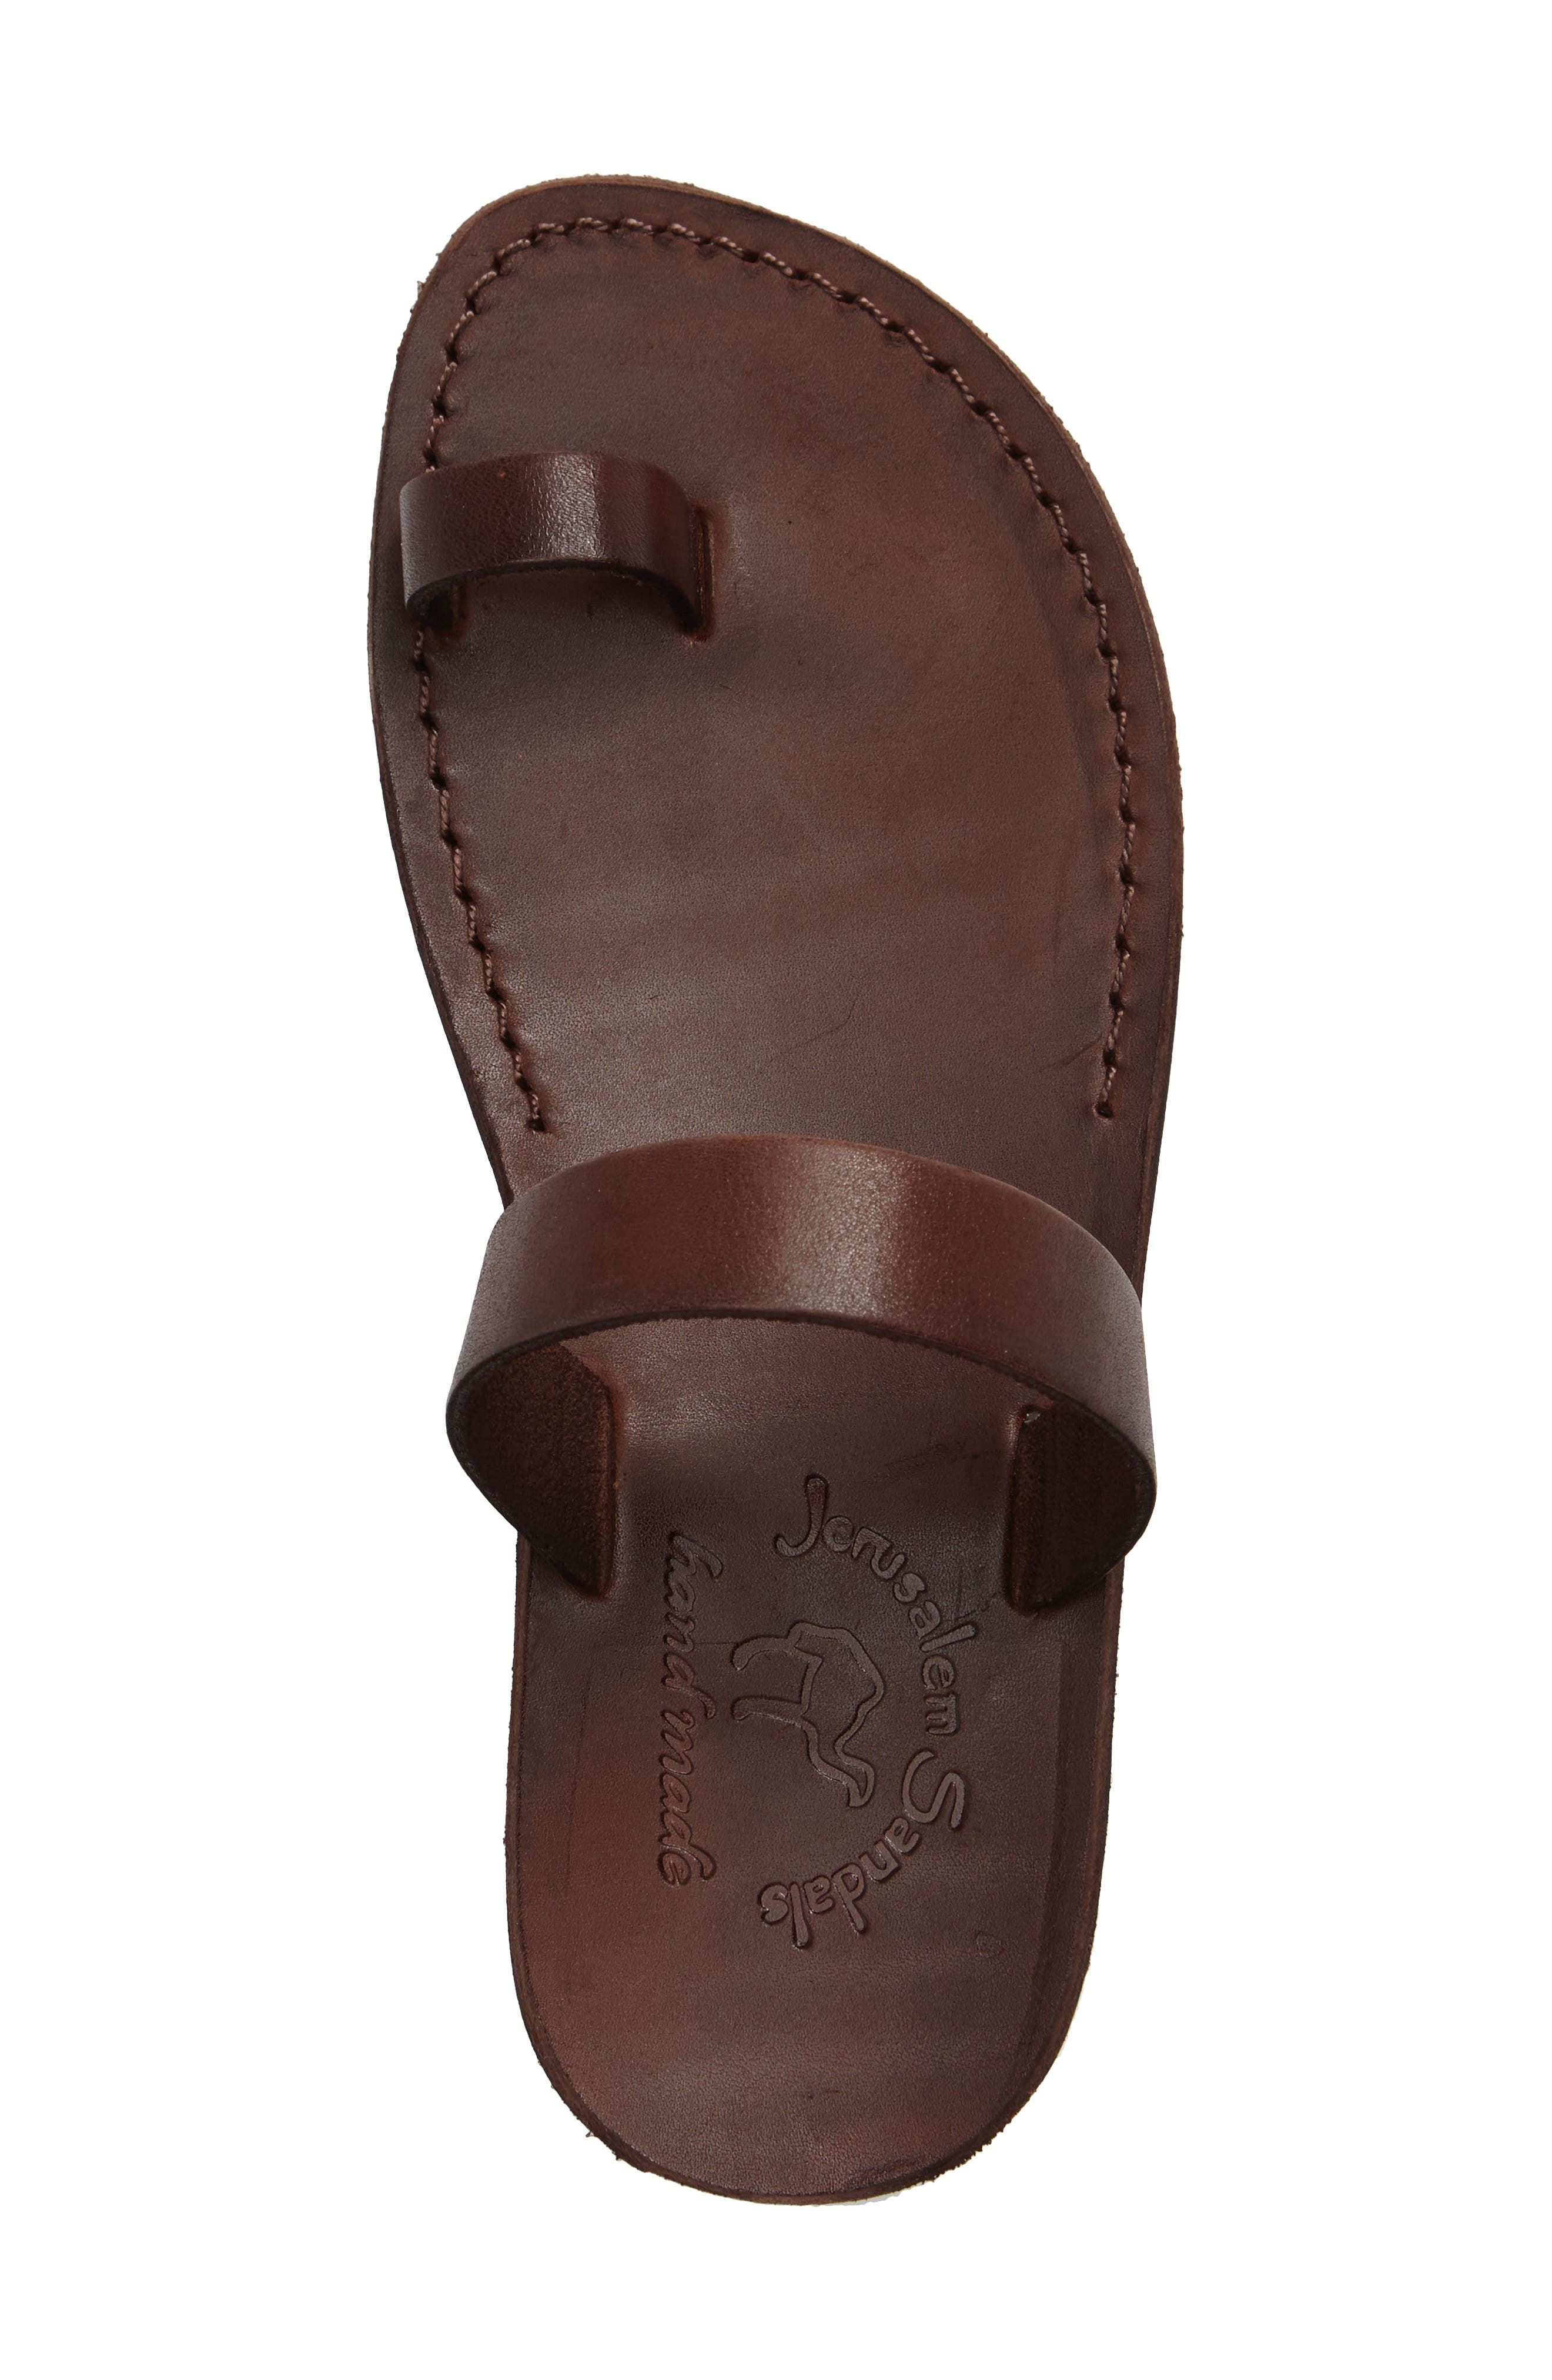 Eden Toe Loop Sandal,                             Alternate thumbnail 3, color,                             BROWN LEATHER